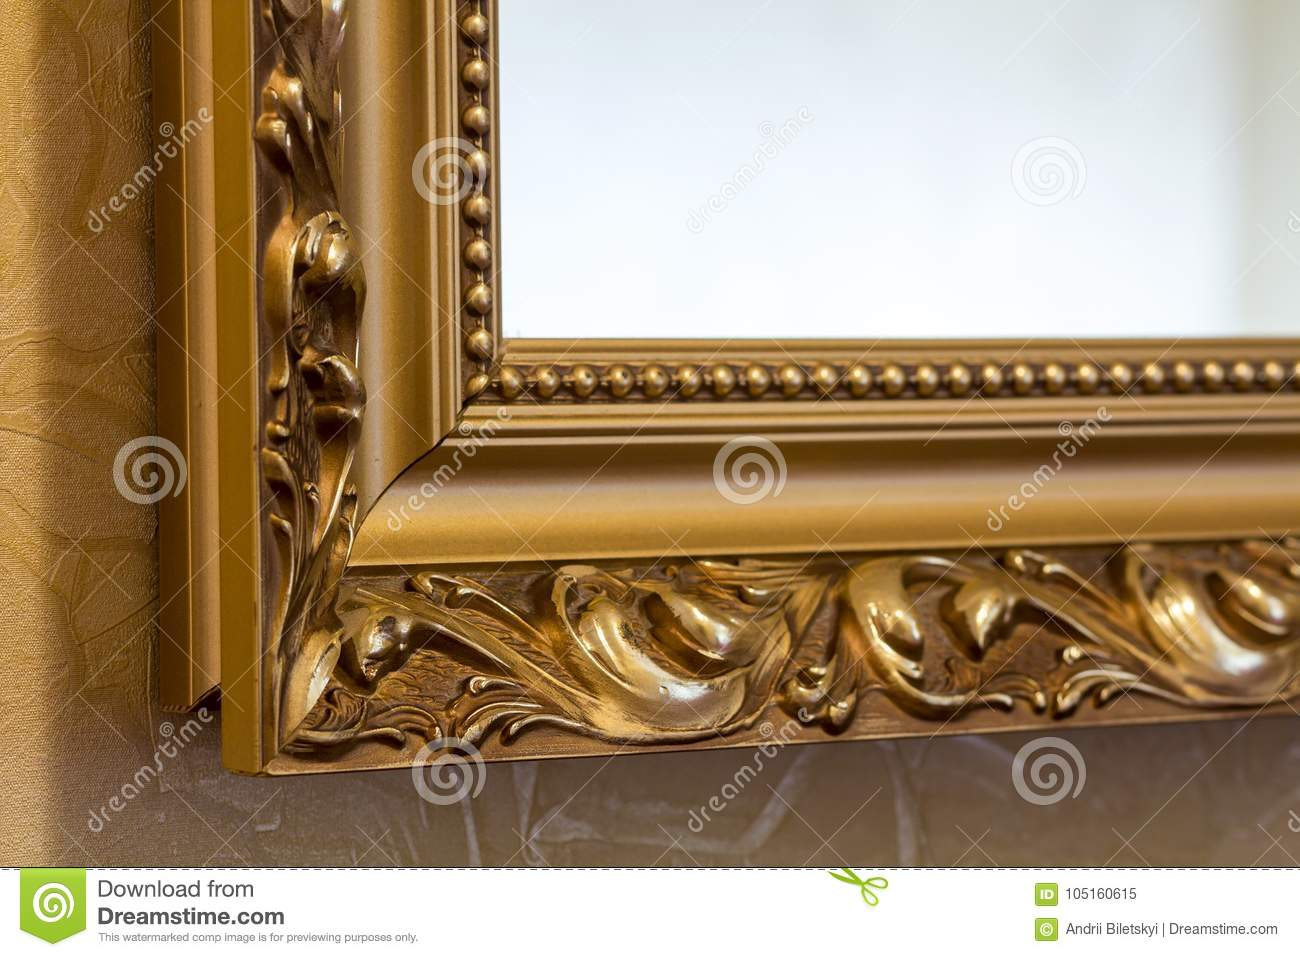 Part of the ornate, golden color carved mirror frame in ancient